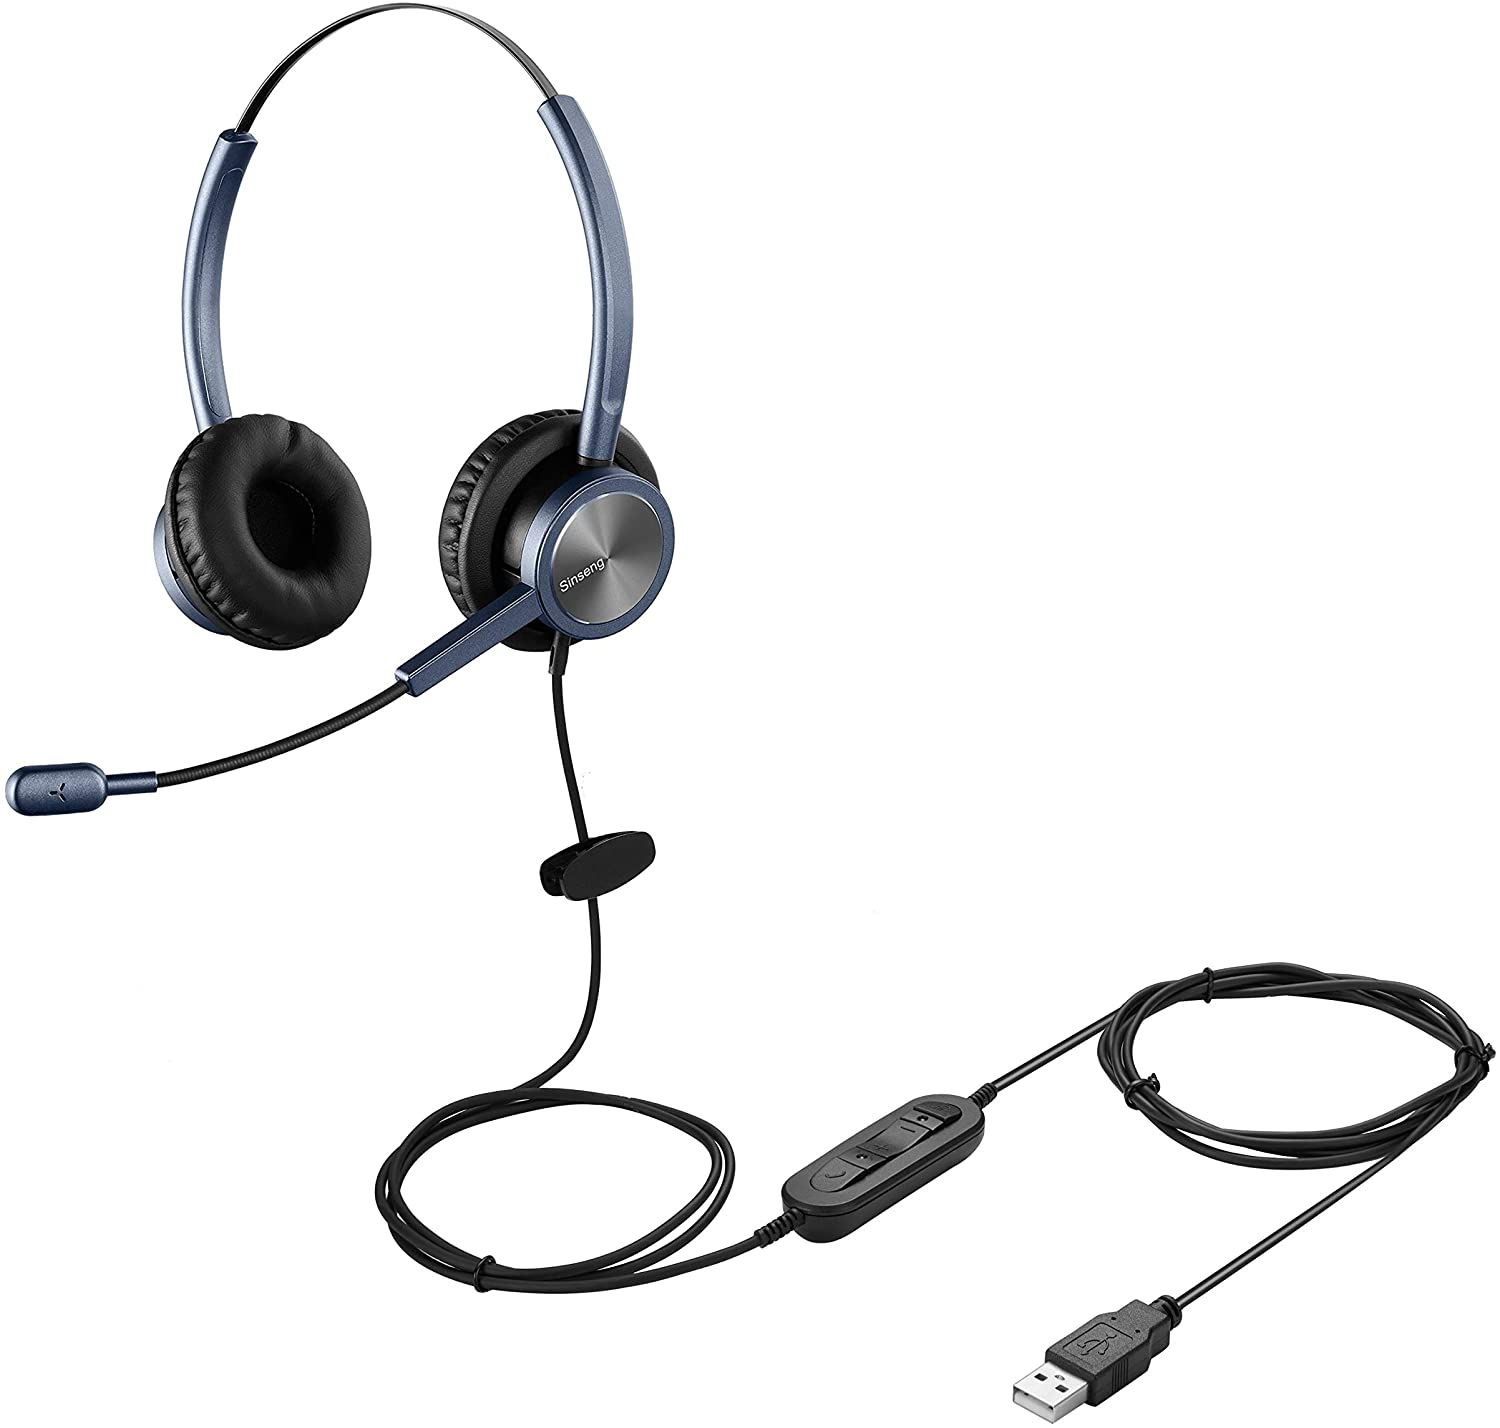 55% OFF Overseas parallel import regular item Sinseng Computer Headset with Noise for Cancelling Microphone La